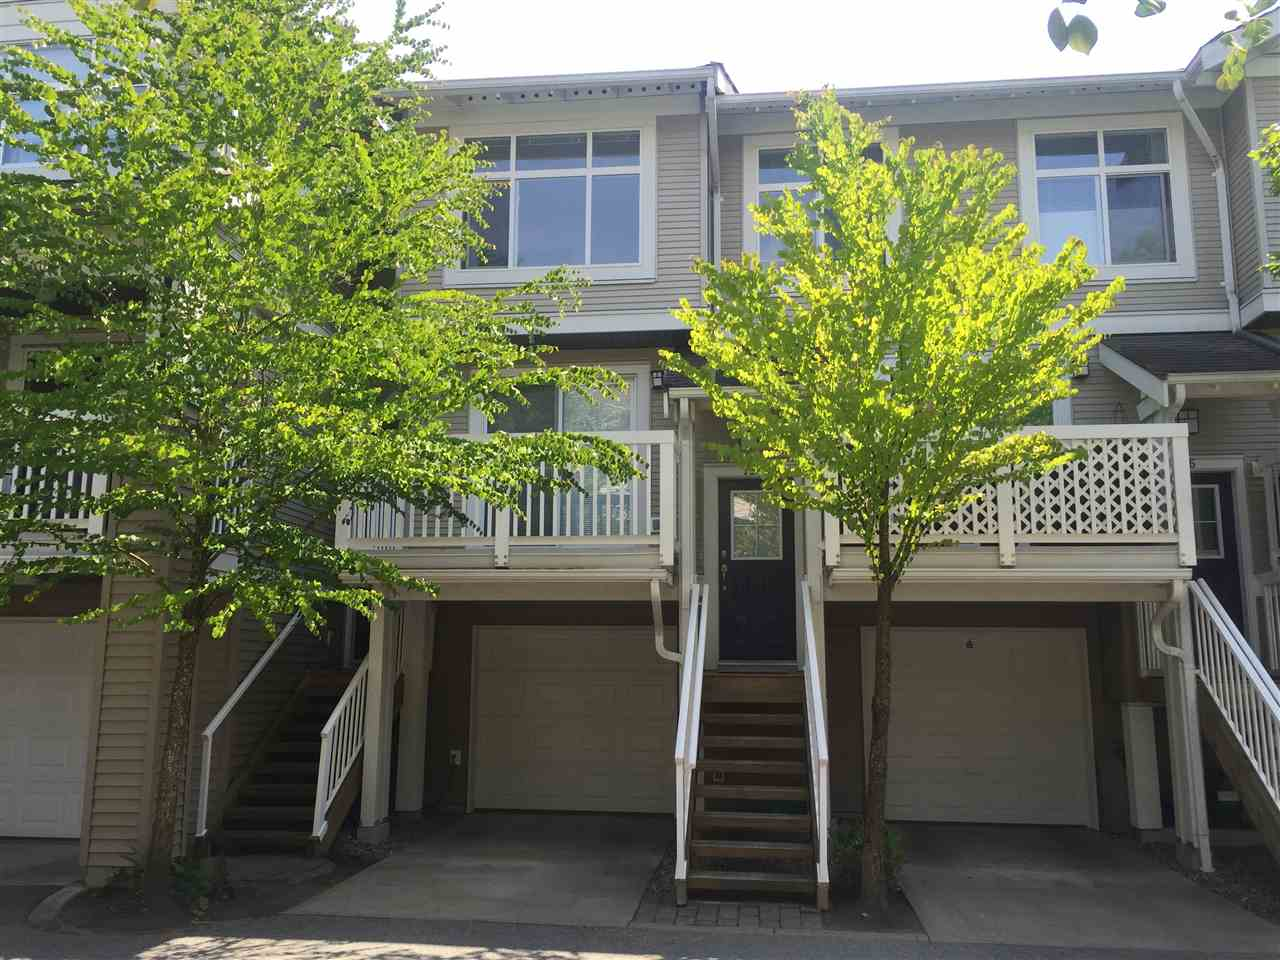 Main Photo: 75 7179 201 Street in Langley: Willoughby Heights Townhouse for sale : MLS® # R2074312